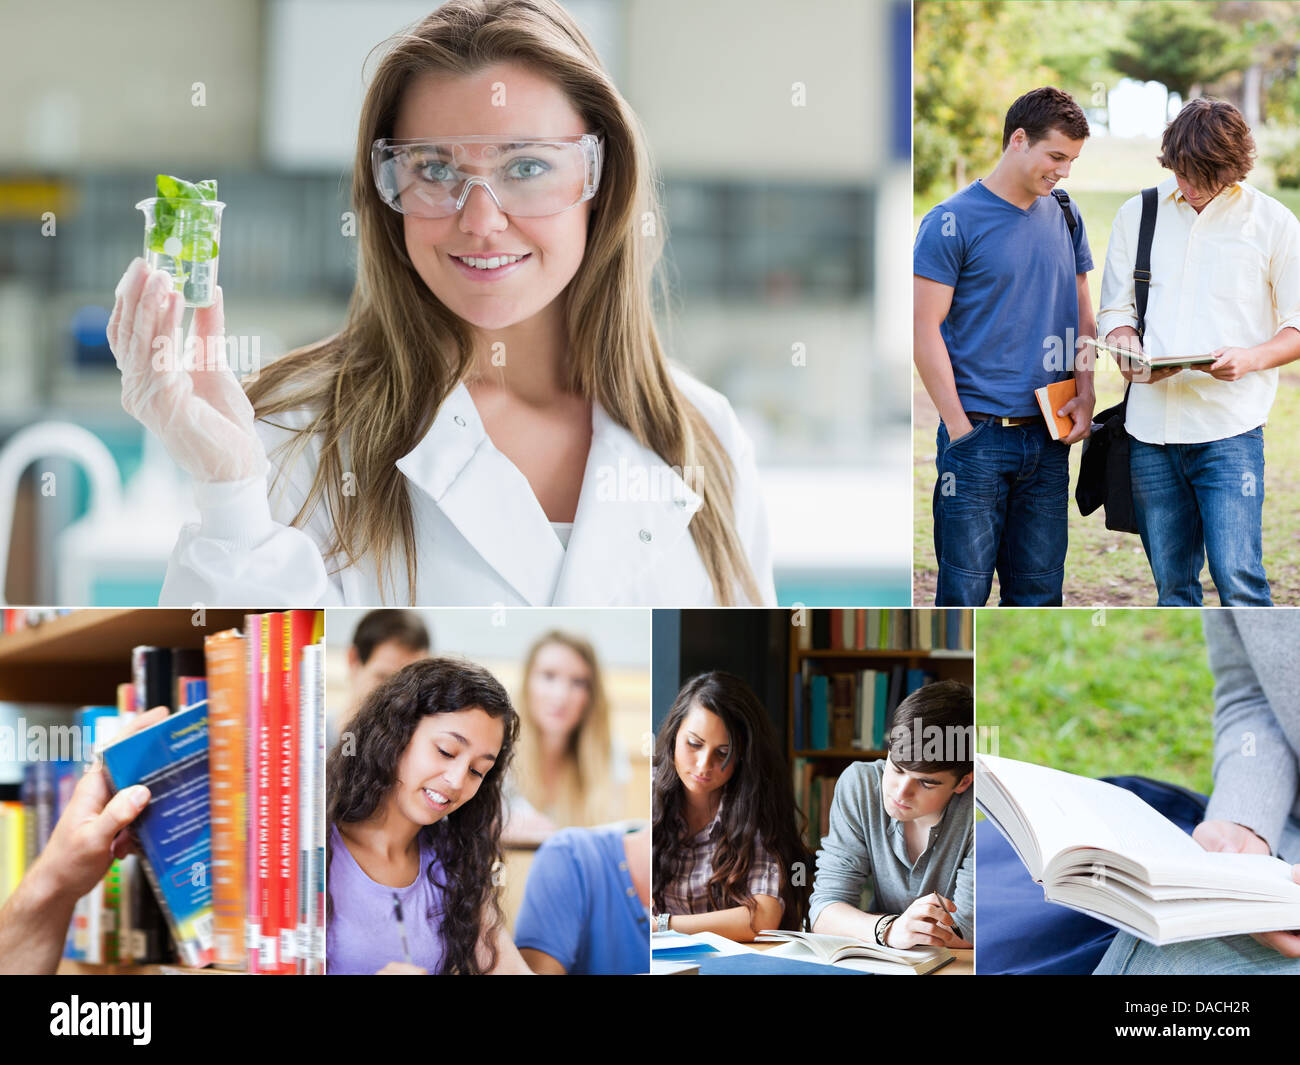 Collage of pictures with various students - Stock Image